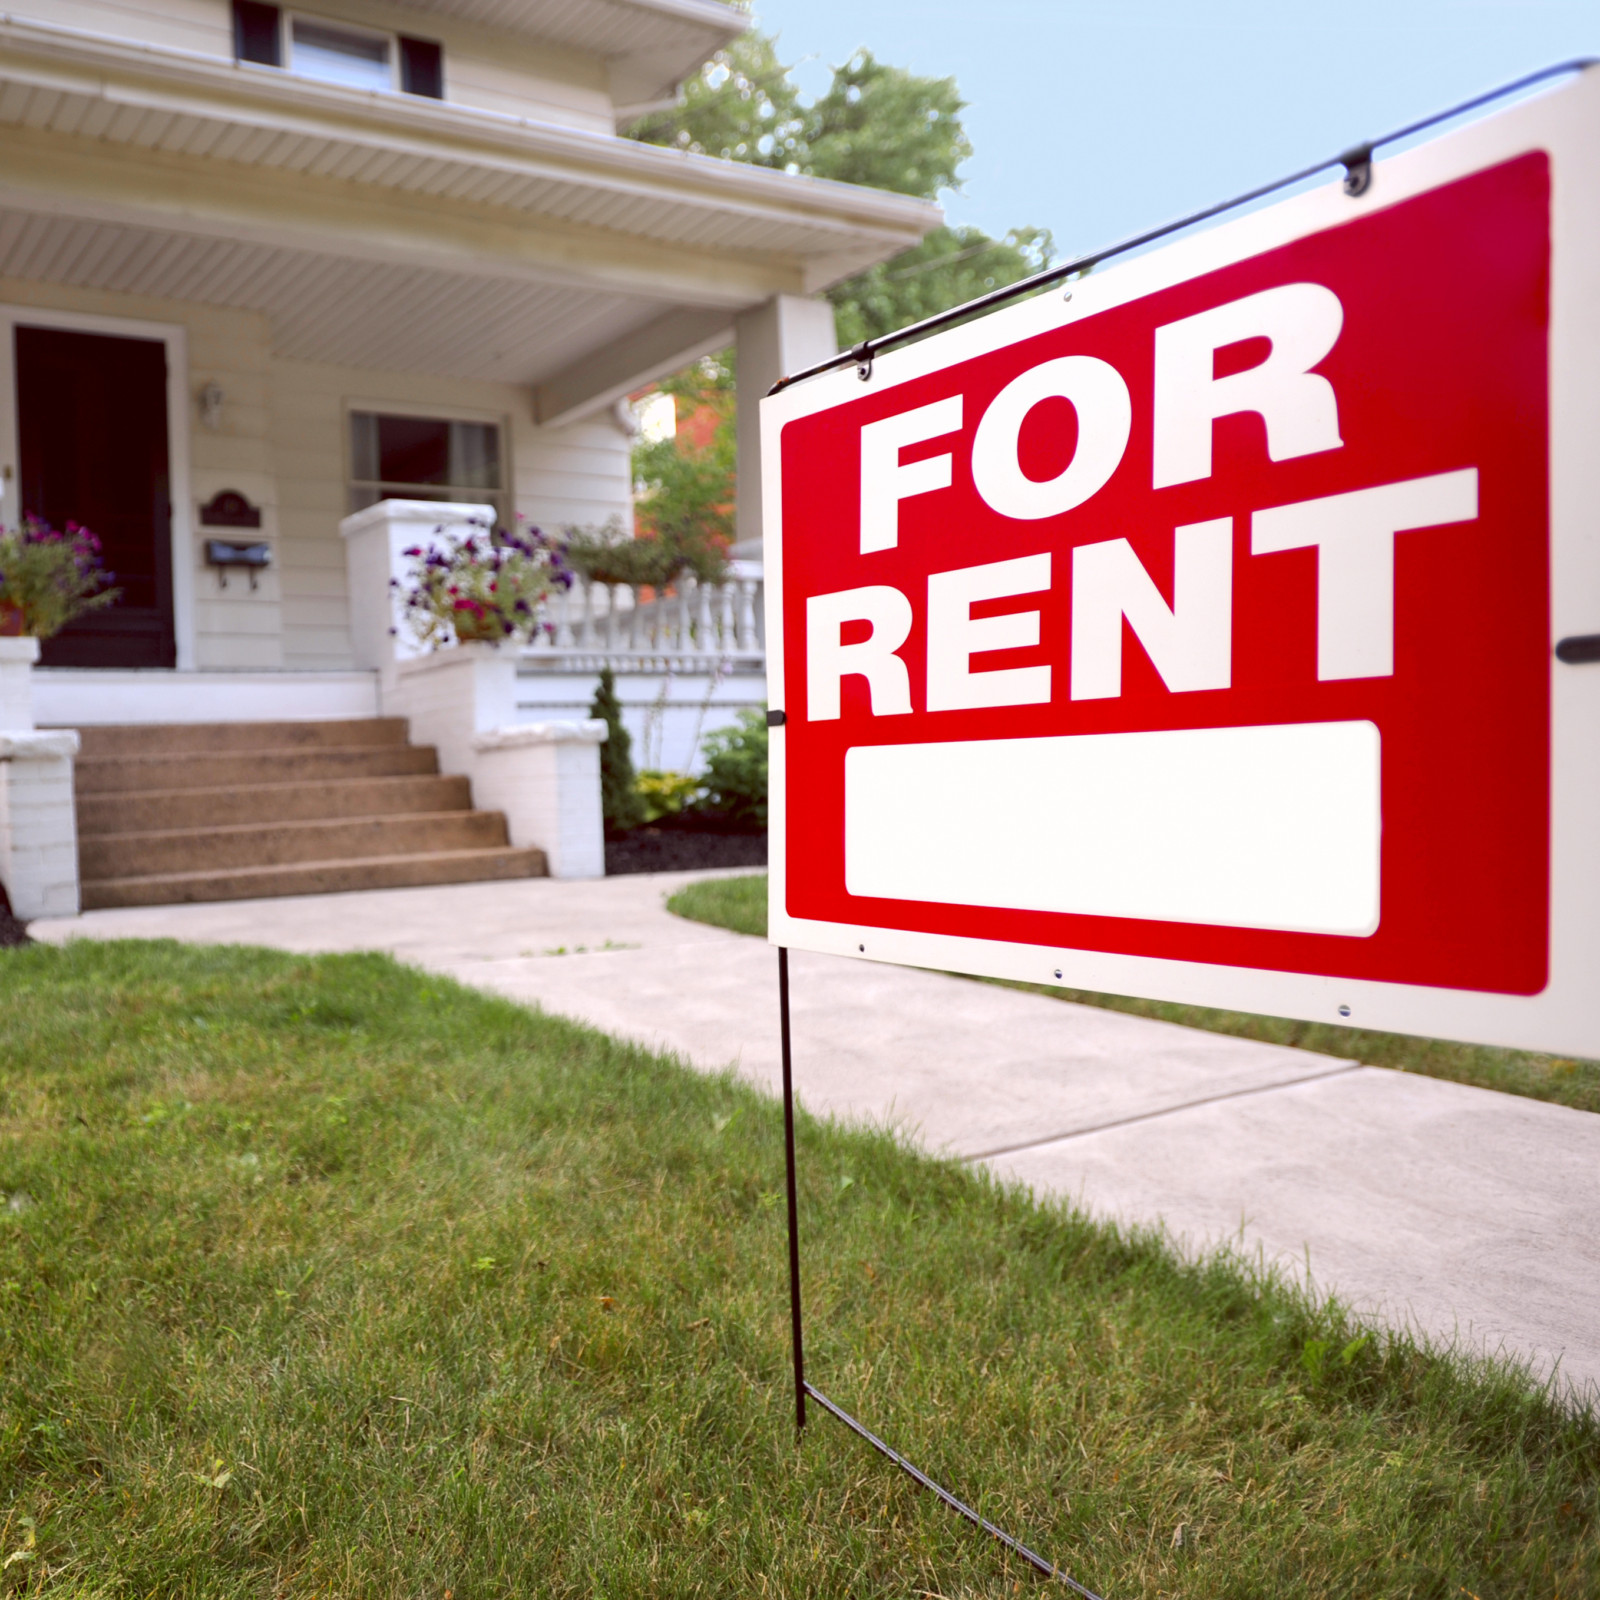 renters by choice or circumstance many big city renters earn